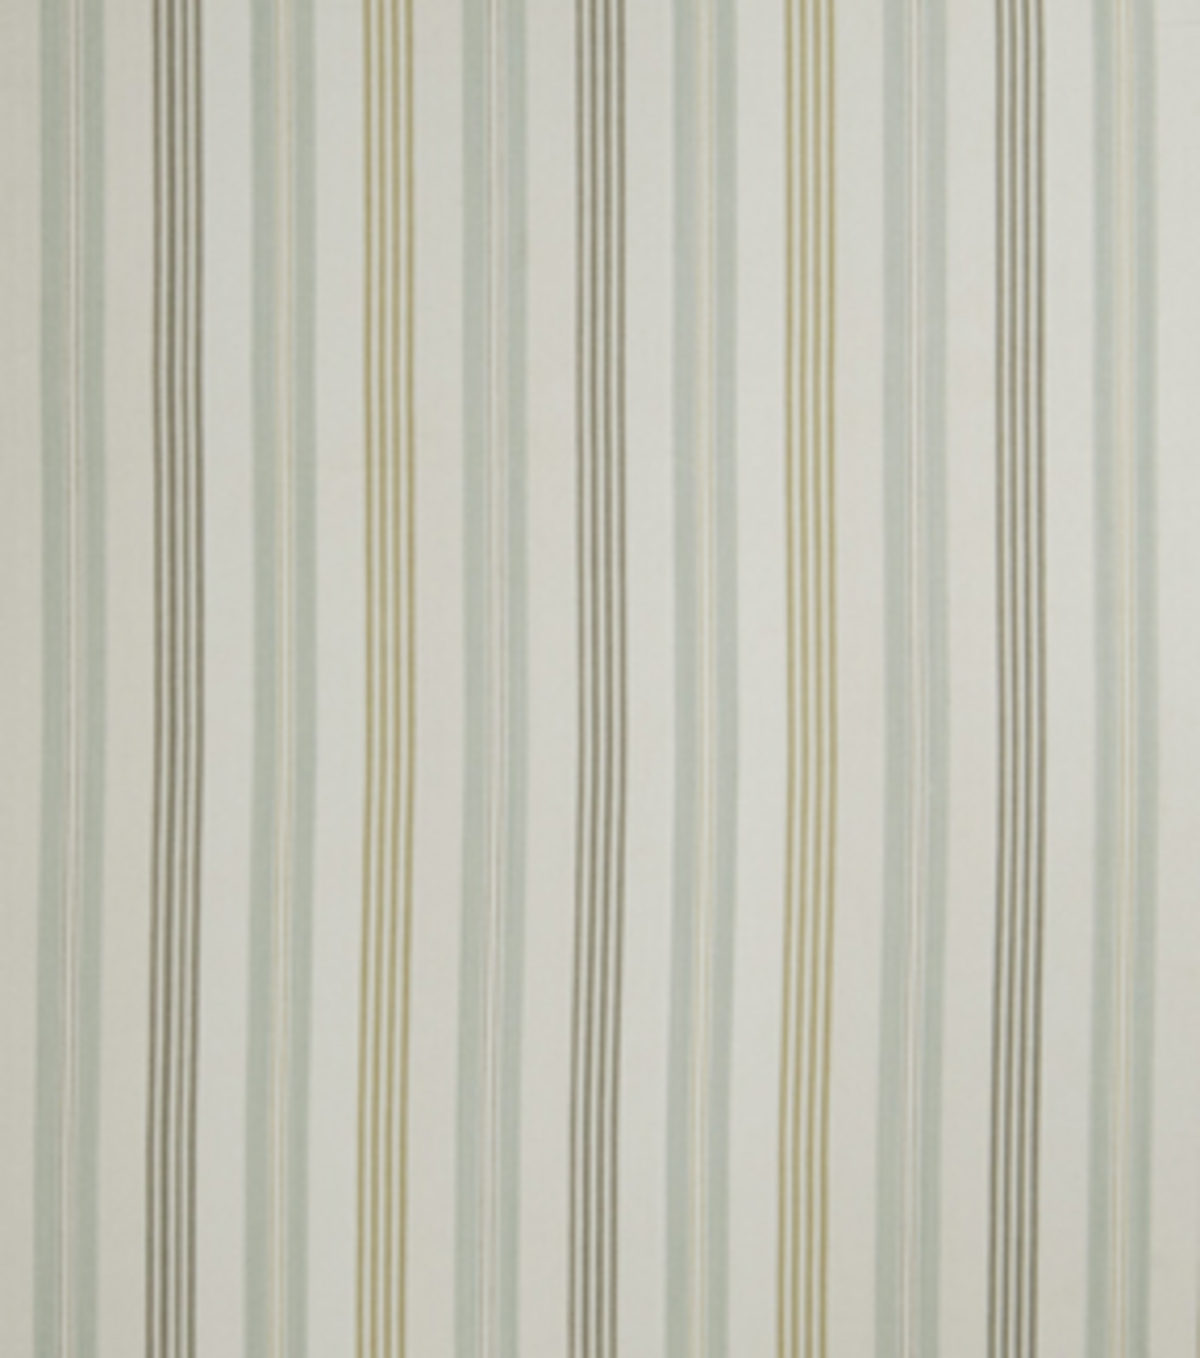 Home Decor 8\u0022x8\u0022 Fabric Swatch-Eaton Square Equate Seaspray